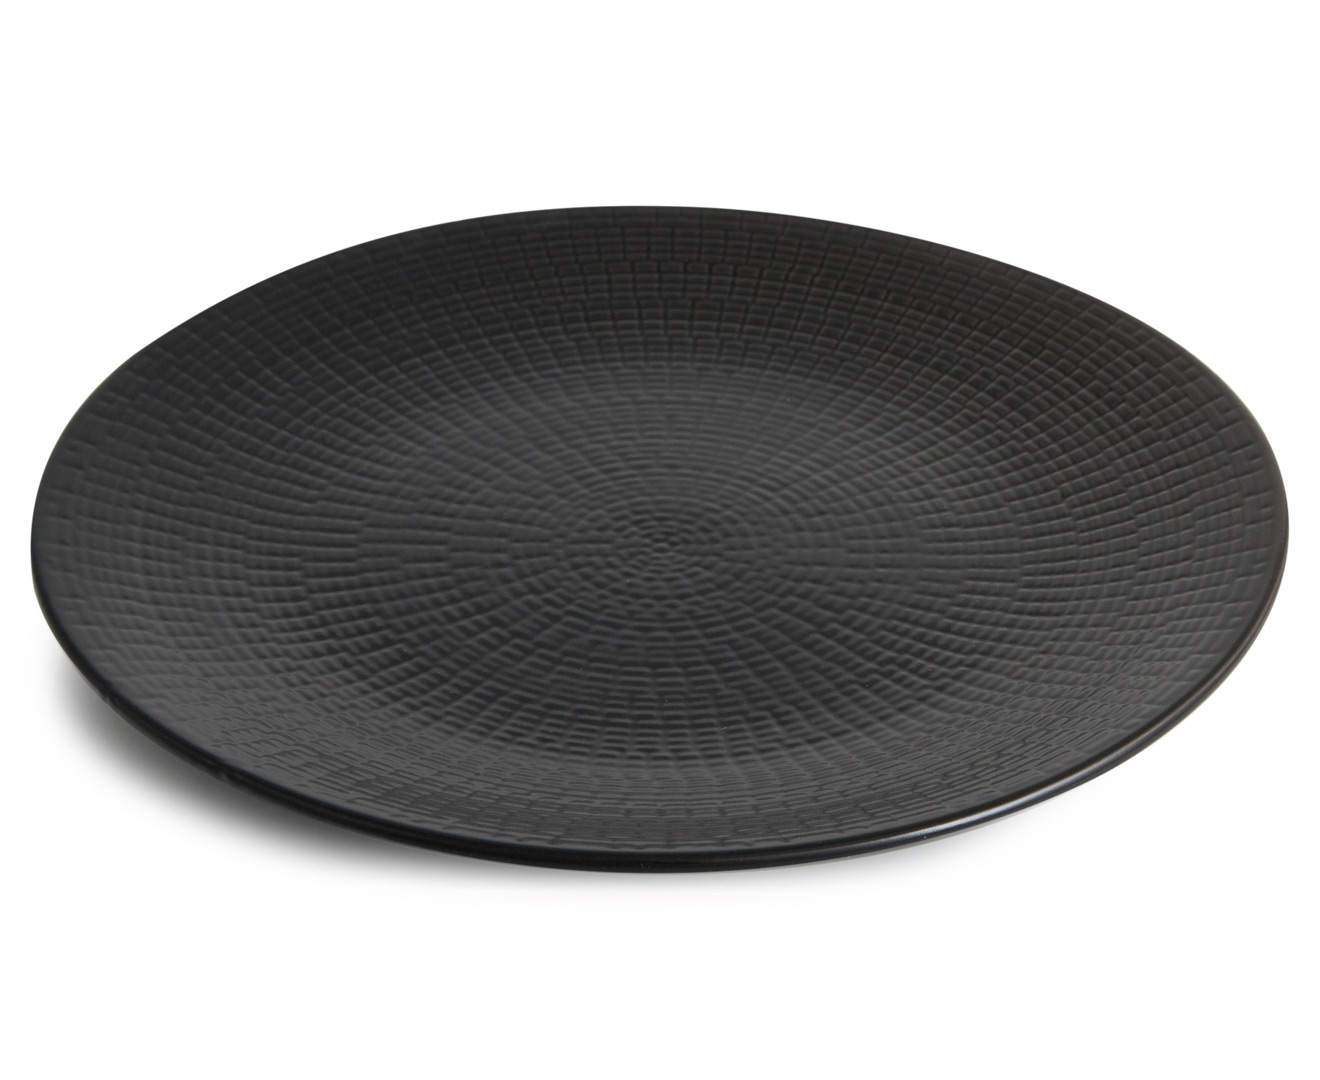 & co. textured design 27cm dinner plate 6-pack - black